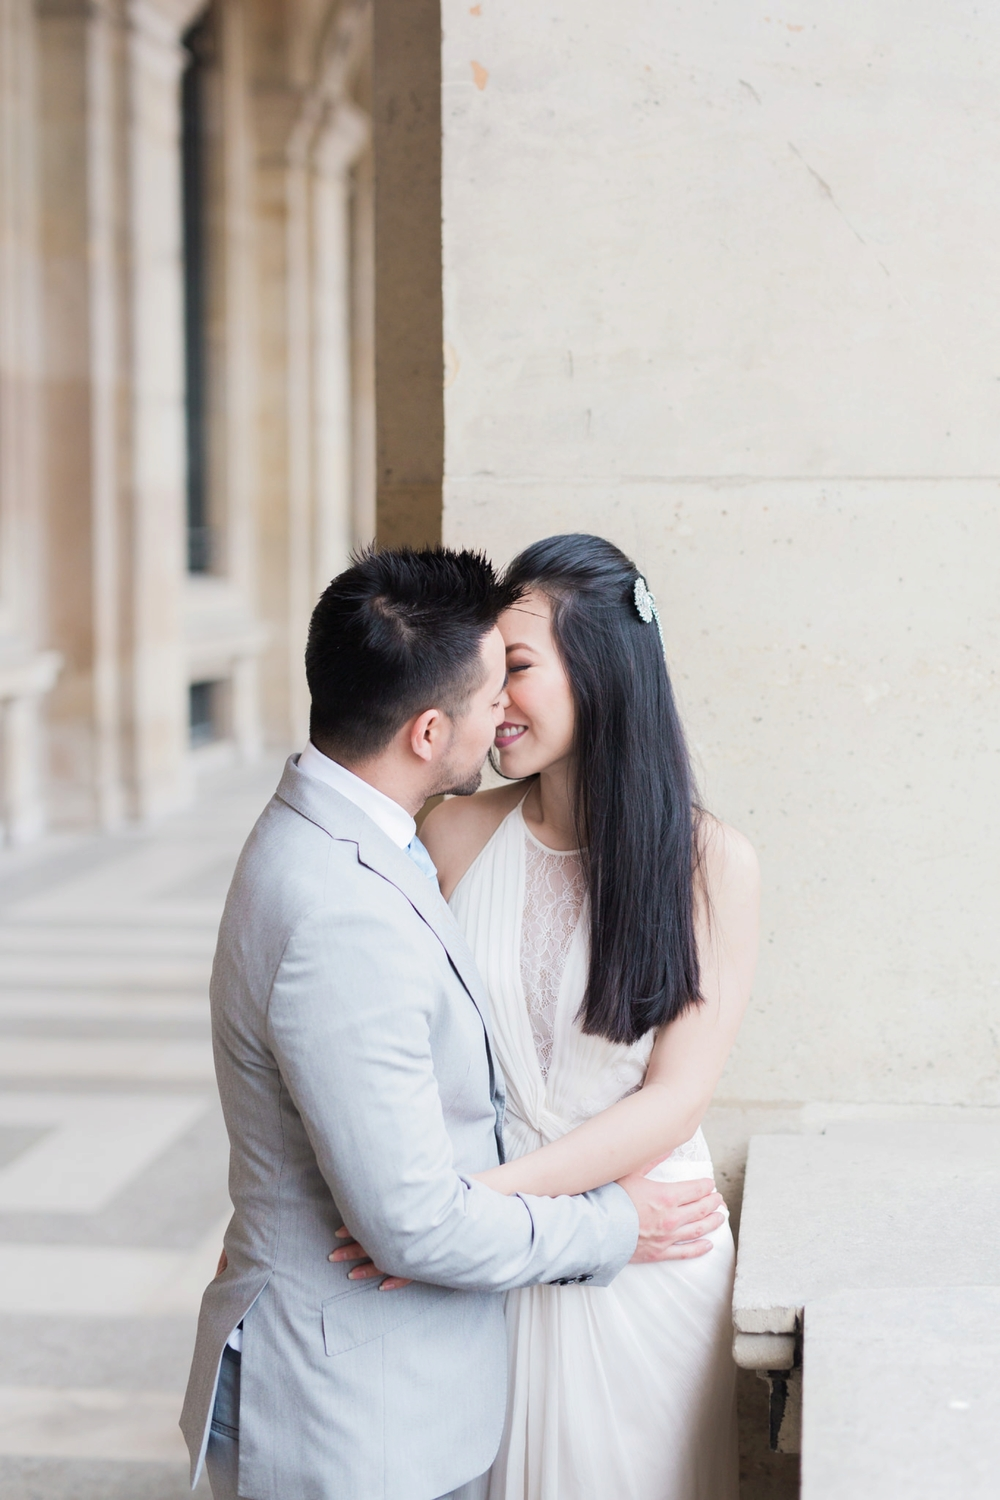 Suzanne_li_photography_paris_engagement_shoot_0008.jpg